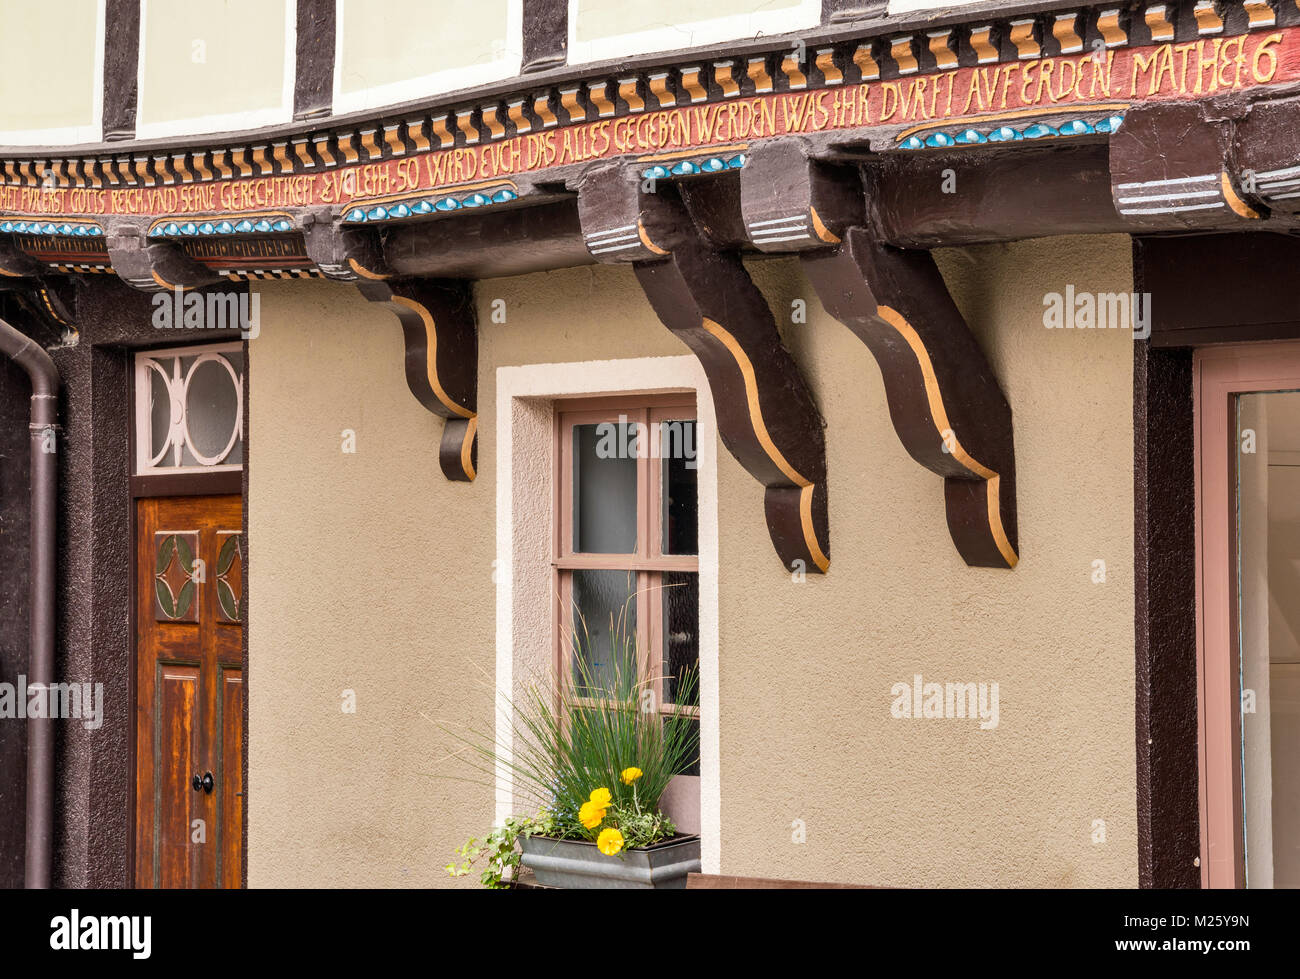 Inscription on half-timbered house at Sydekumstrasse in Hann Munden, Lower Saxony, Germany - Stock Image